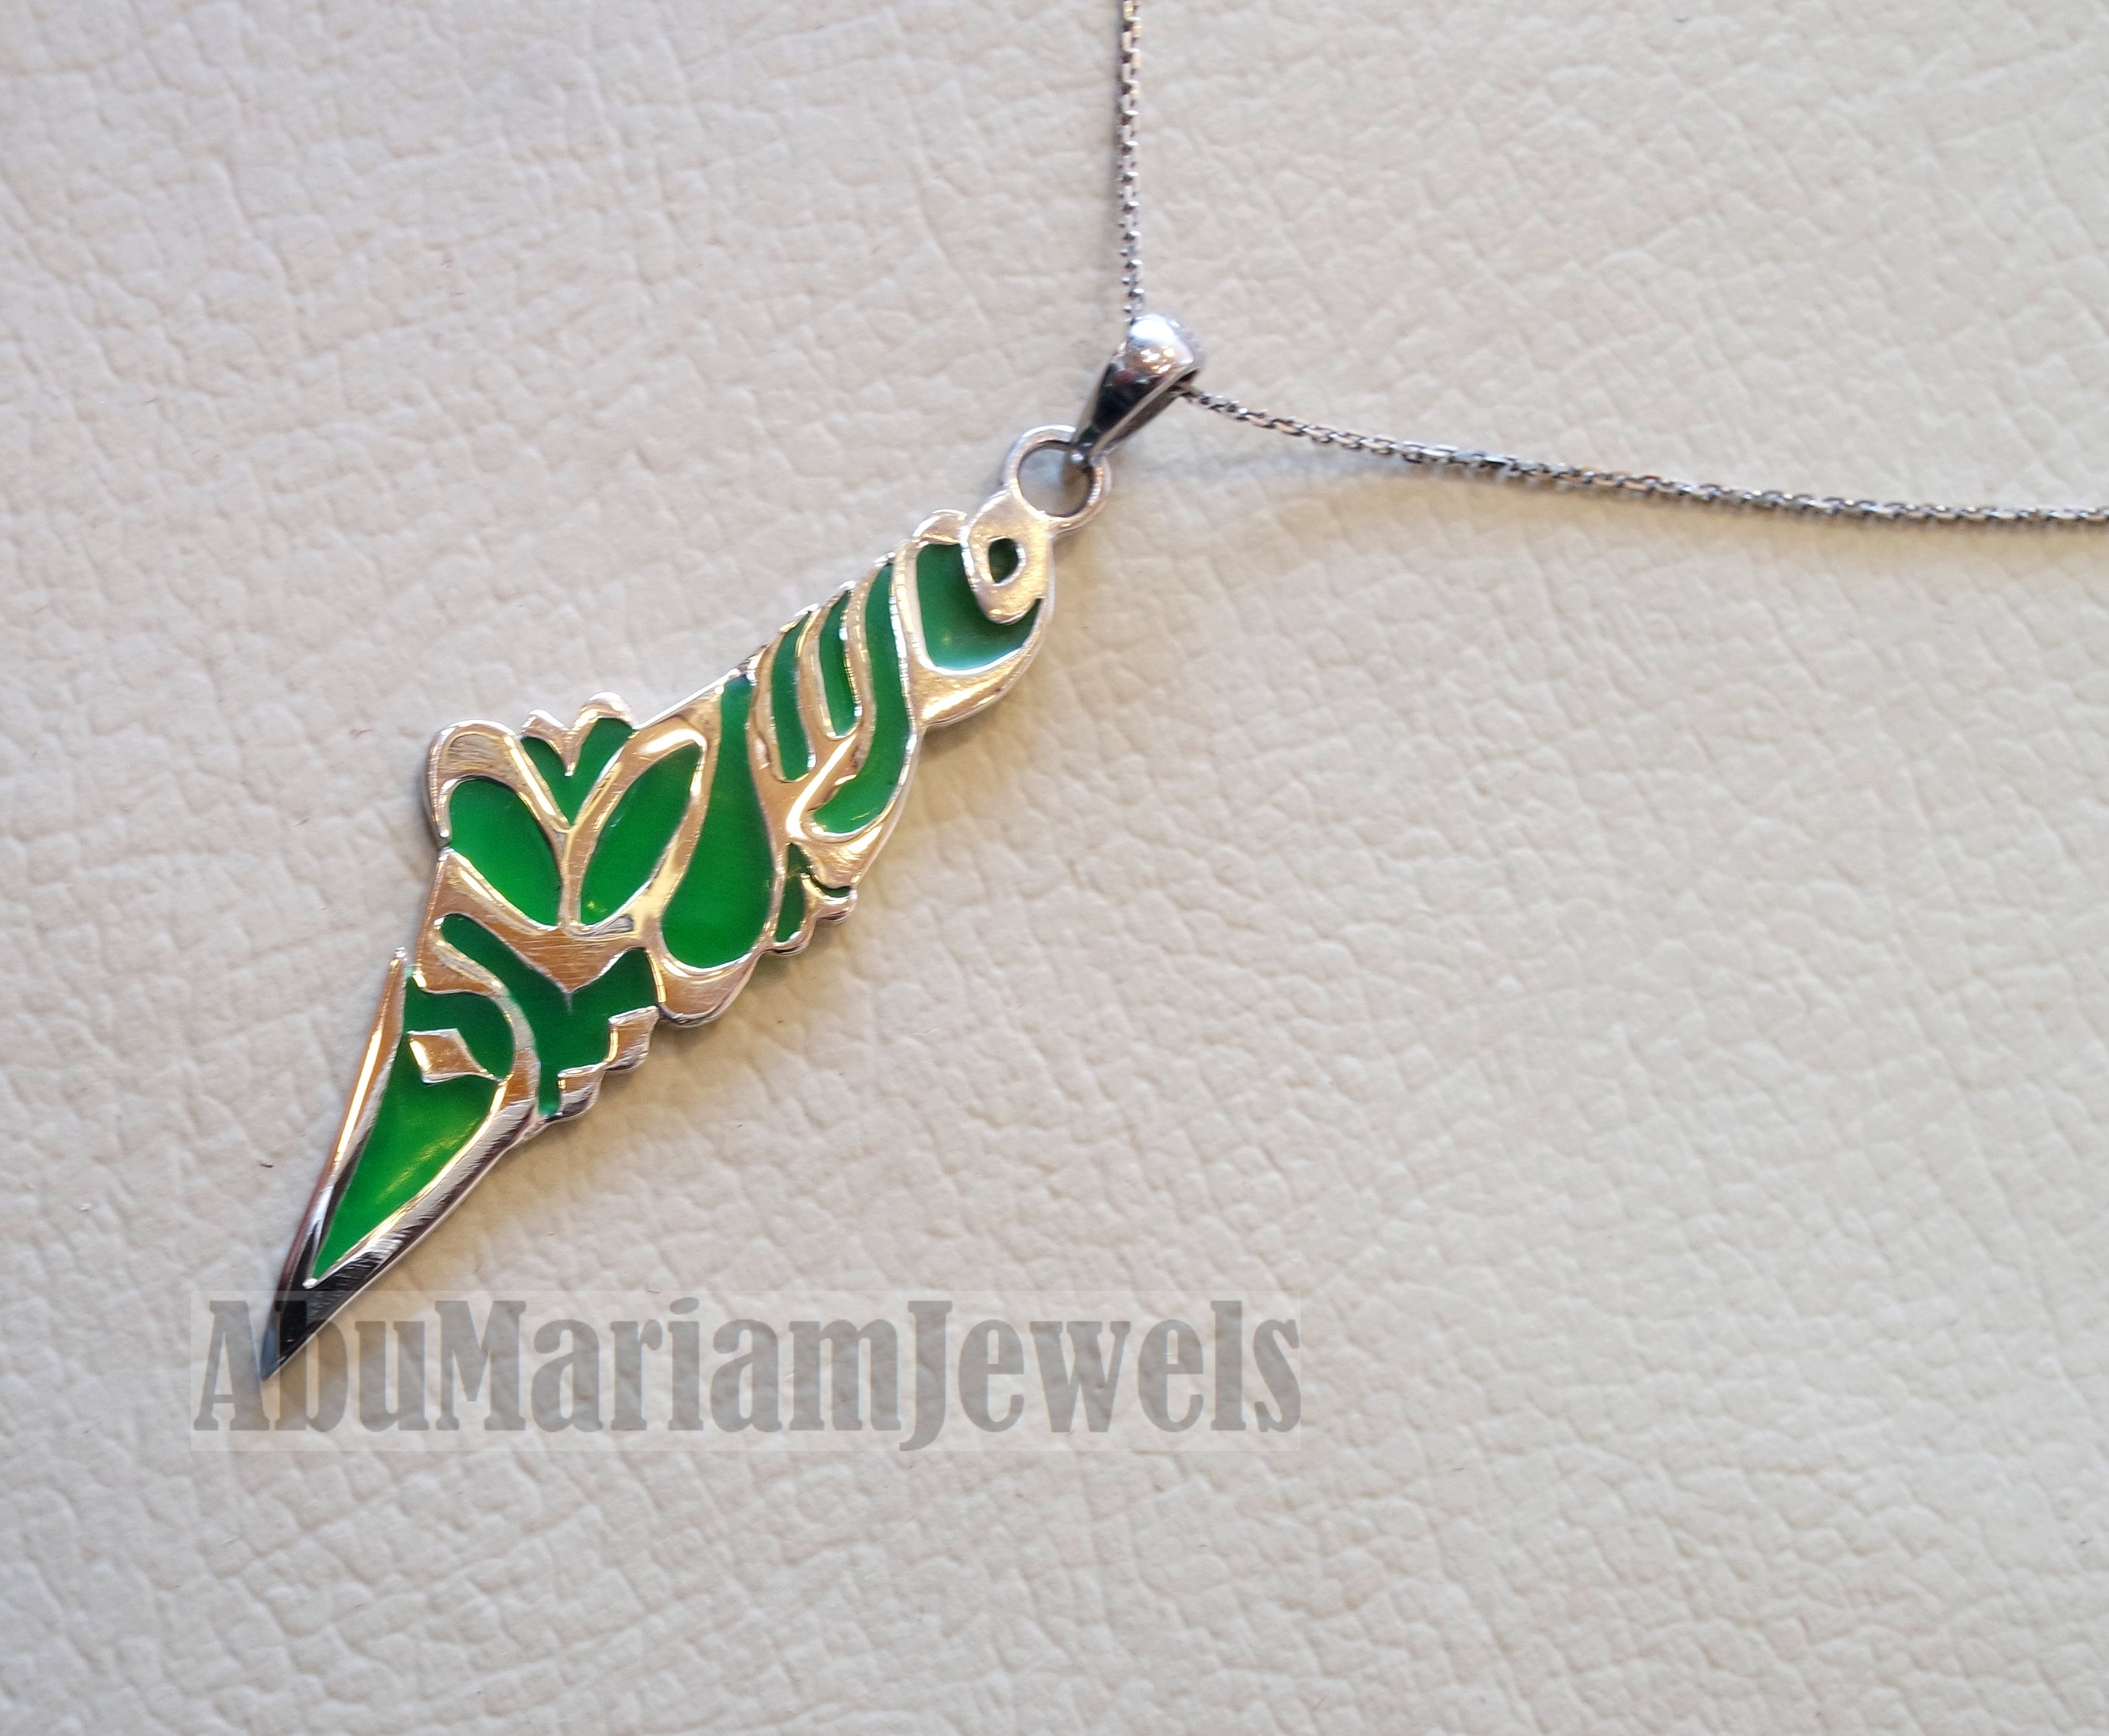 Palestine map pendant sterling silver 925 k high quality with green enamel jewelry arabic calligraphy fast shipping خارطه فلسطين